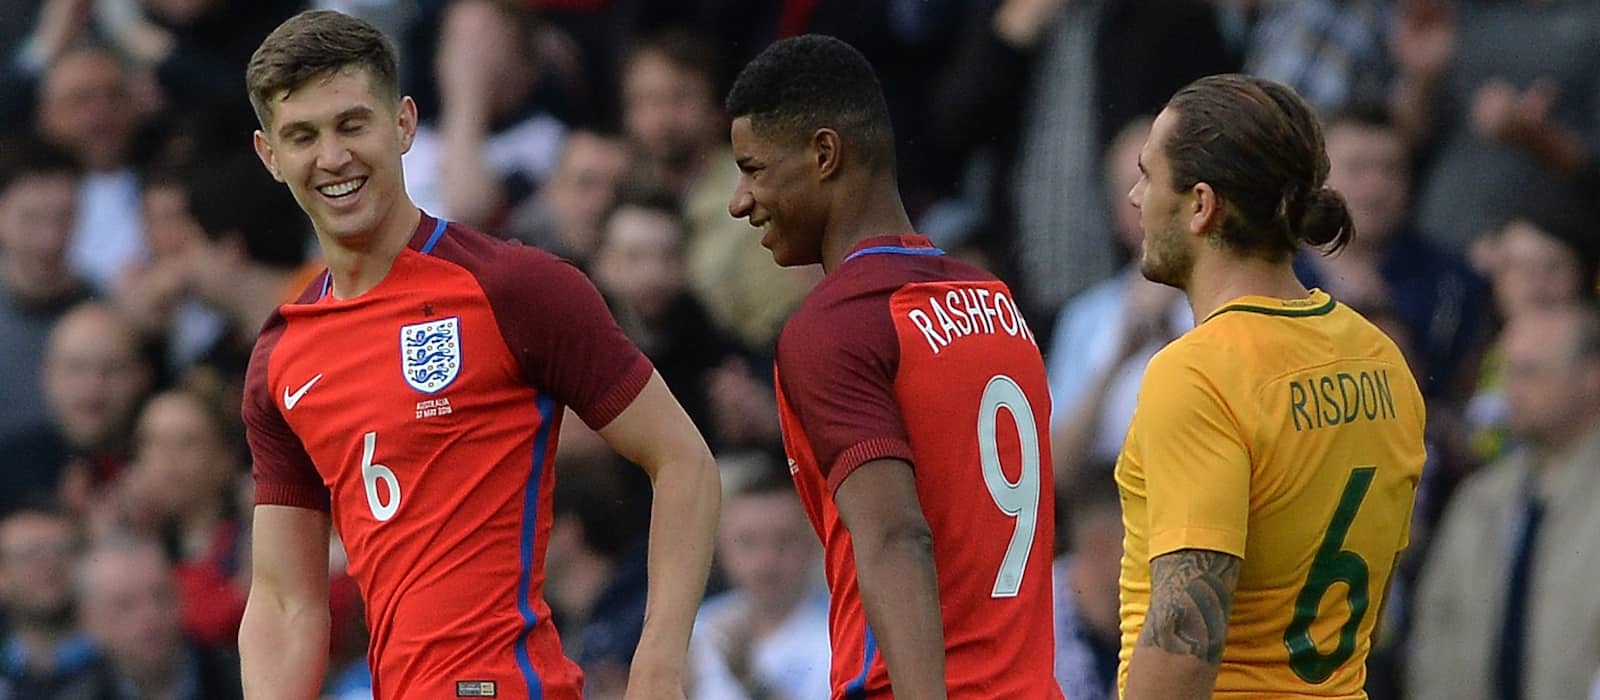 Chris Smalling praises Marcus Rashford after spectacular England debut